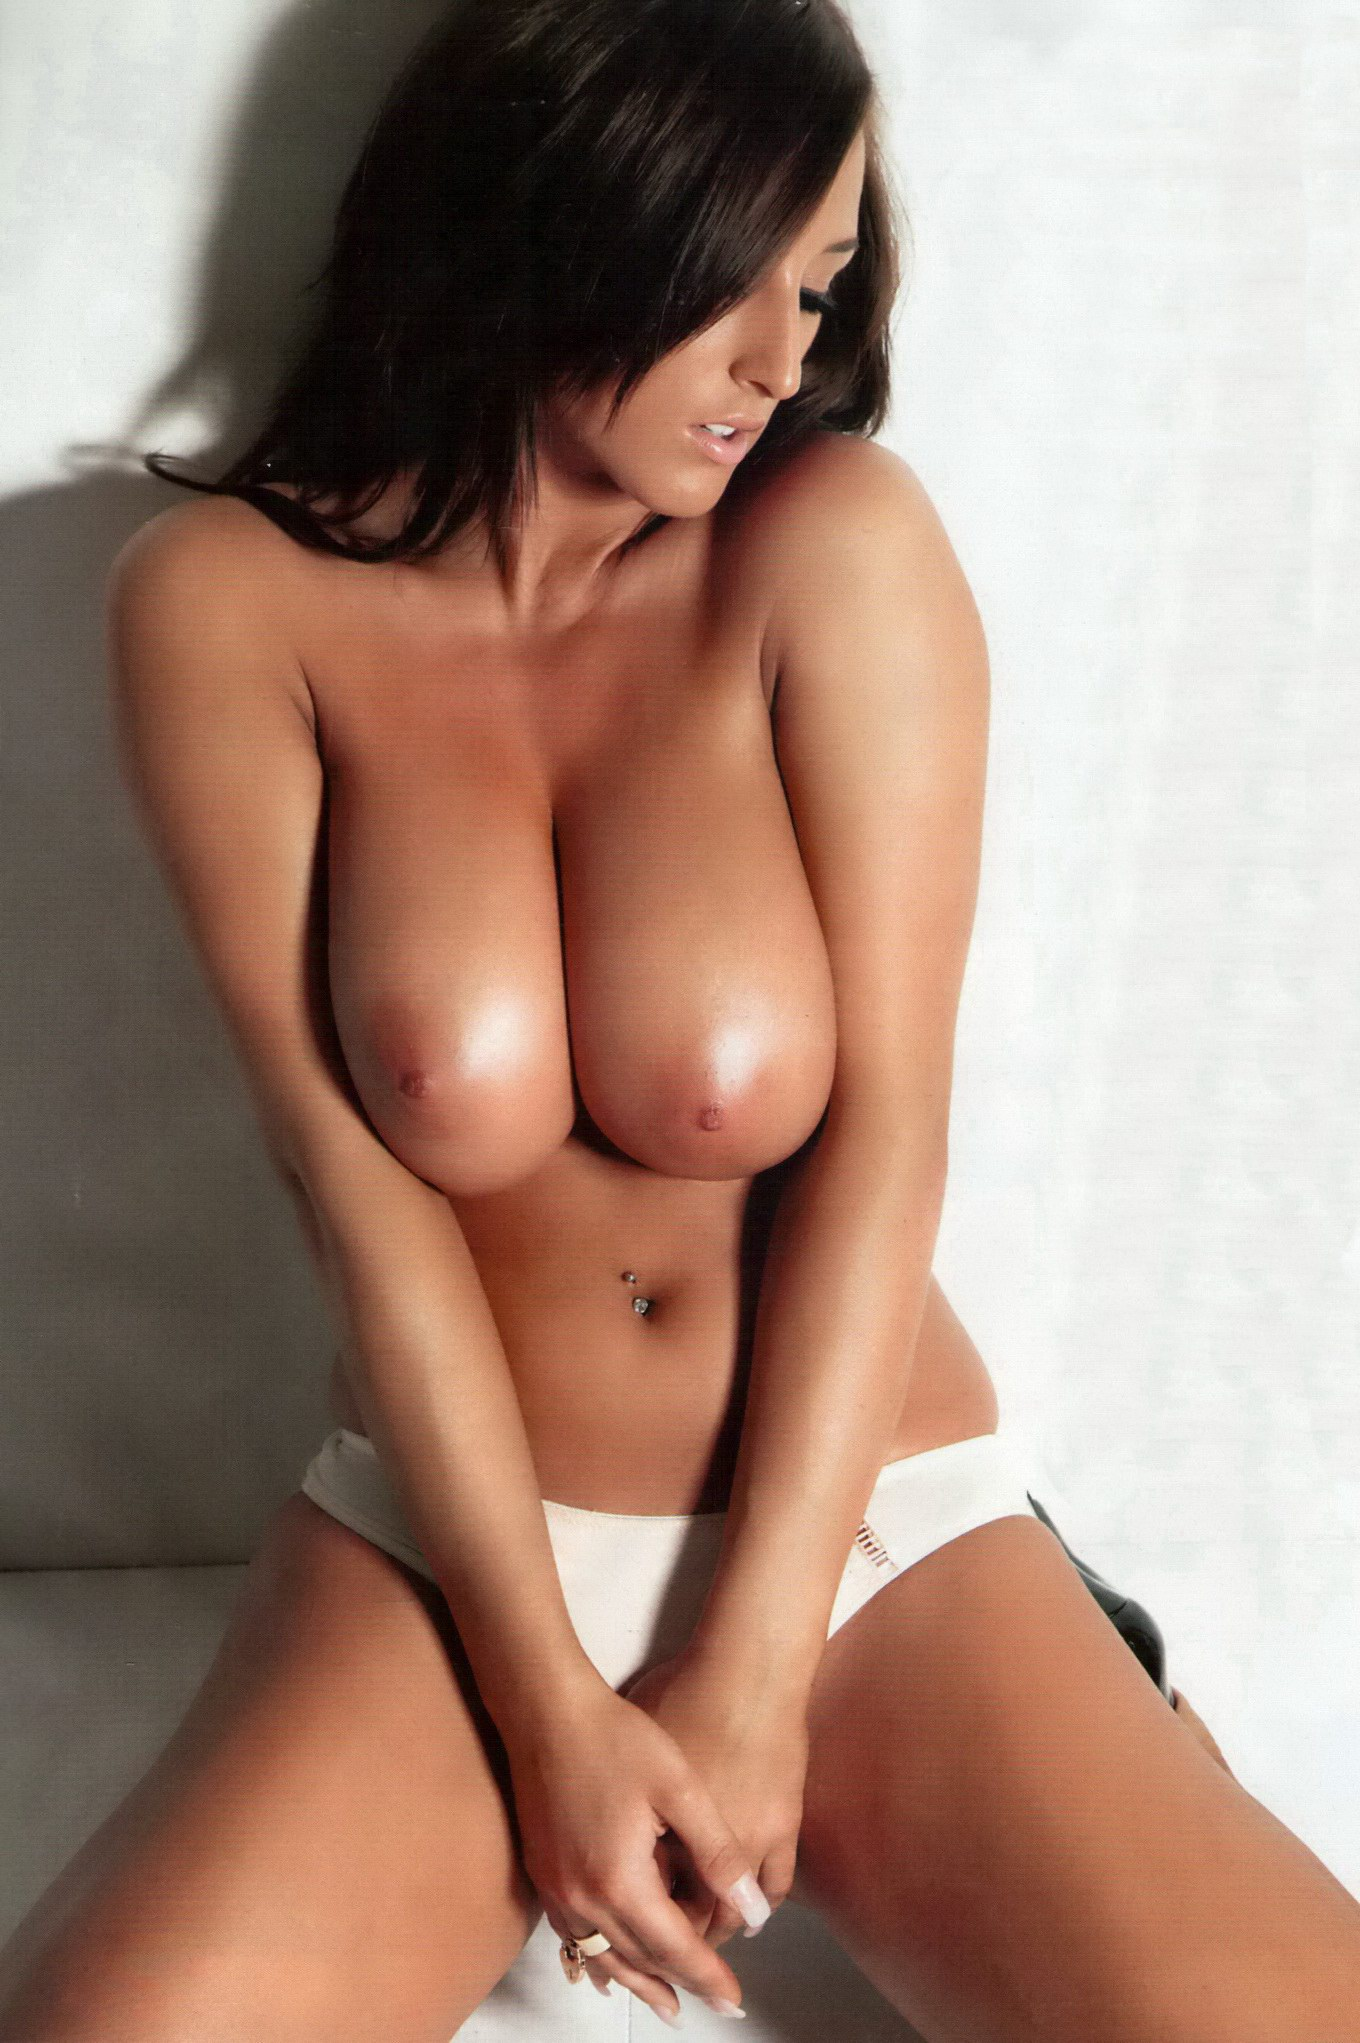 Stacey poole evergreen stripes 1 10